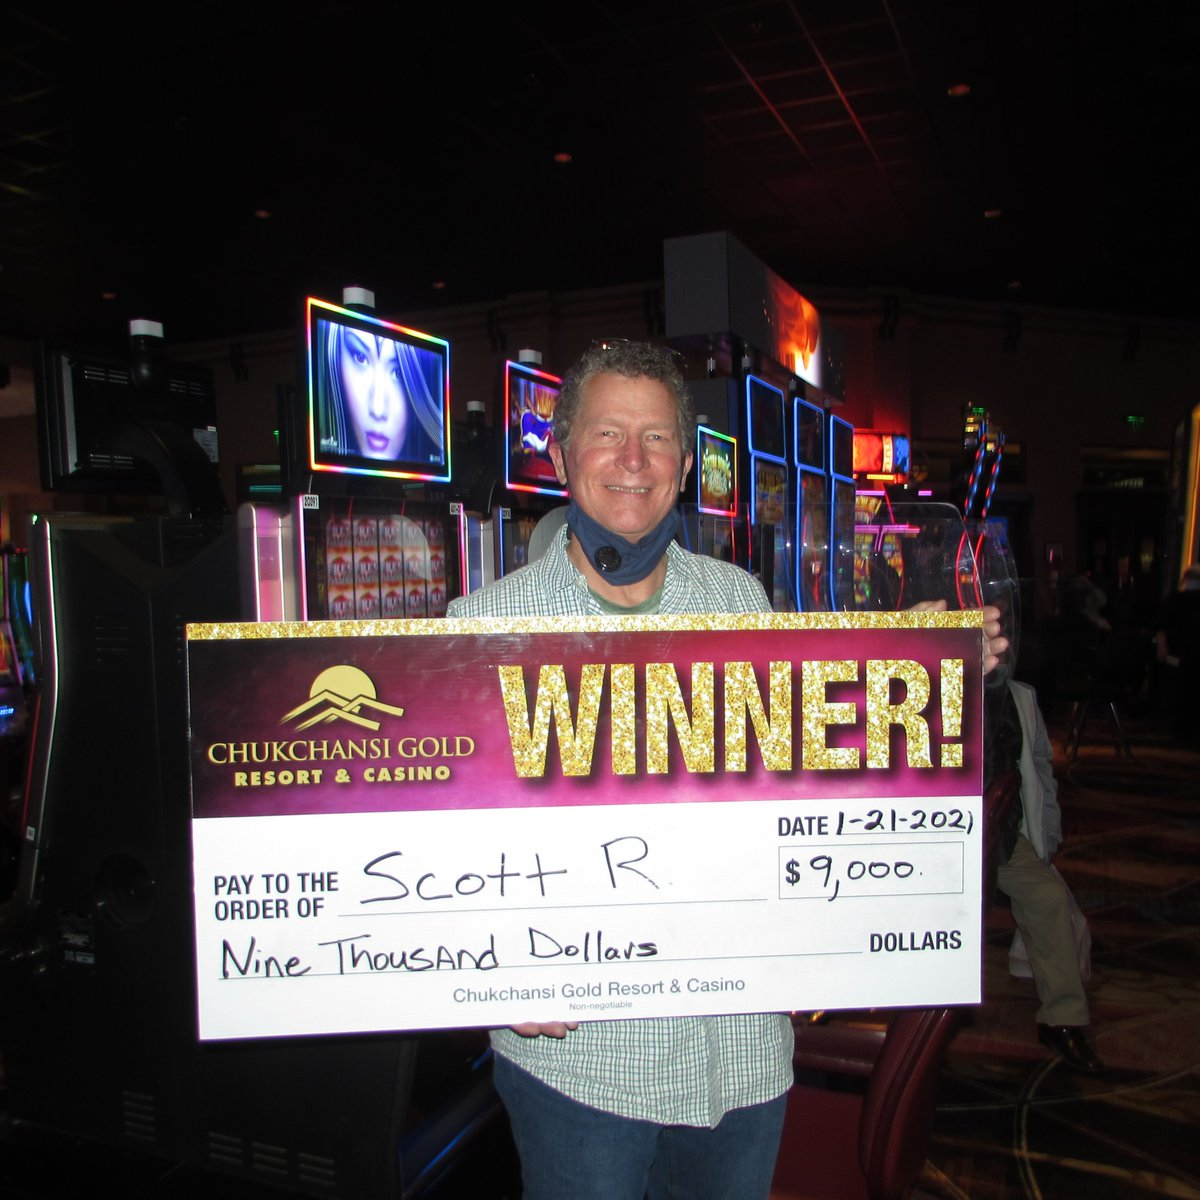 Congratulations to Scott from Fresno on his $9,000 #jackpot on Wicked Winnings 💸 #MoreWinning https://t.co/i0TVVtfe9x